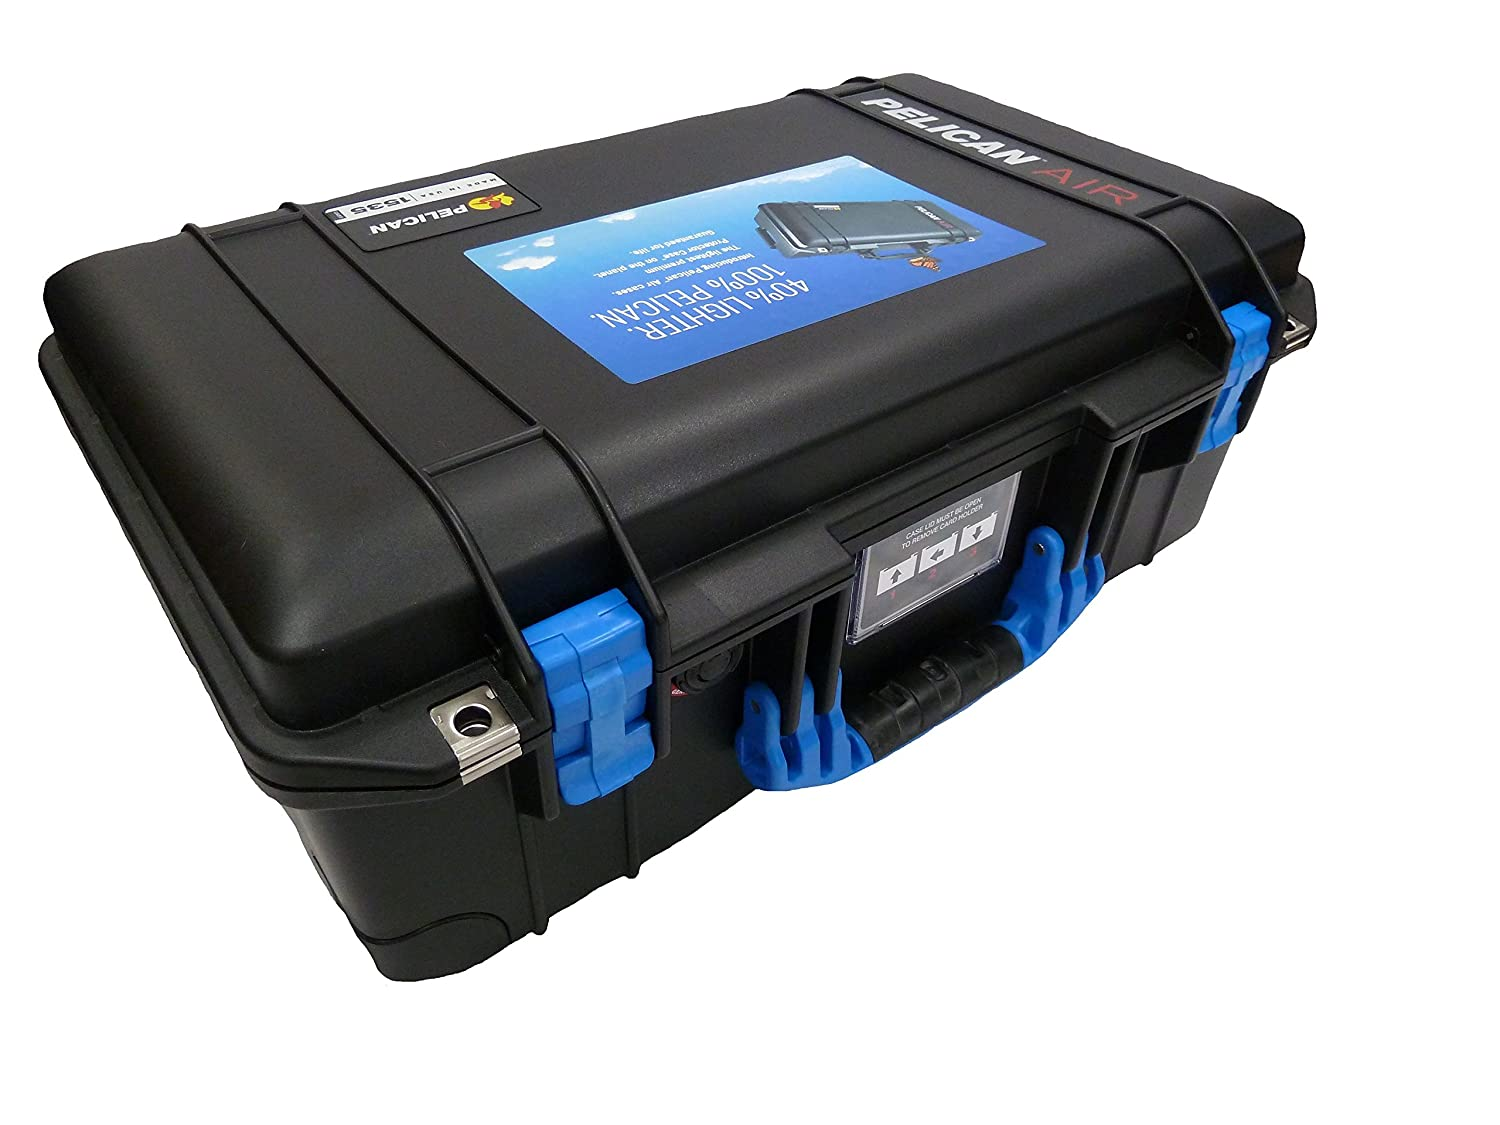 Black Pelican 1525 Air case with Blue Handle & latches. With Foam.